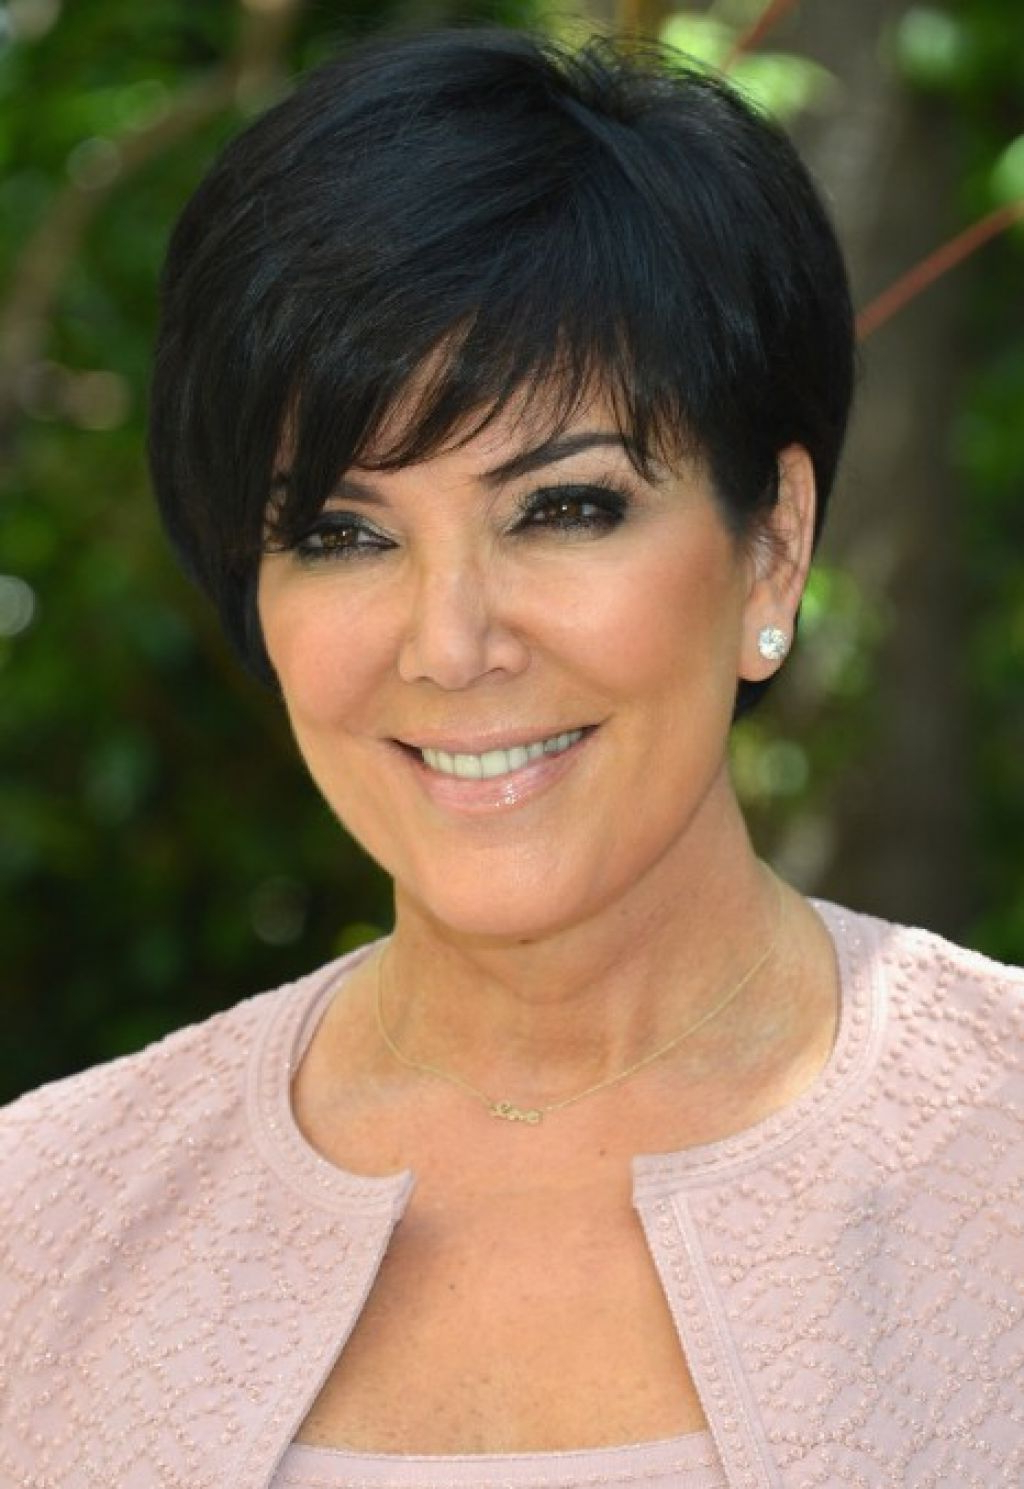 Pincarol Hall On Hair | Pinterest | Hair, Short Hair Styles And With Regard To Kris Jenner Short Haircuts (View 7 of 25)